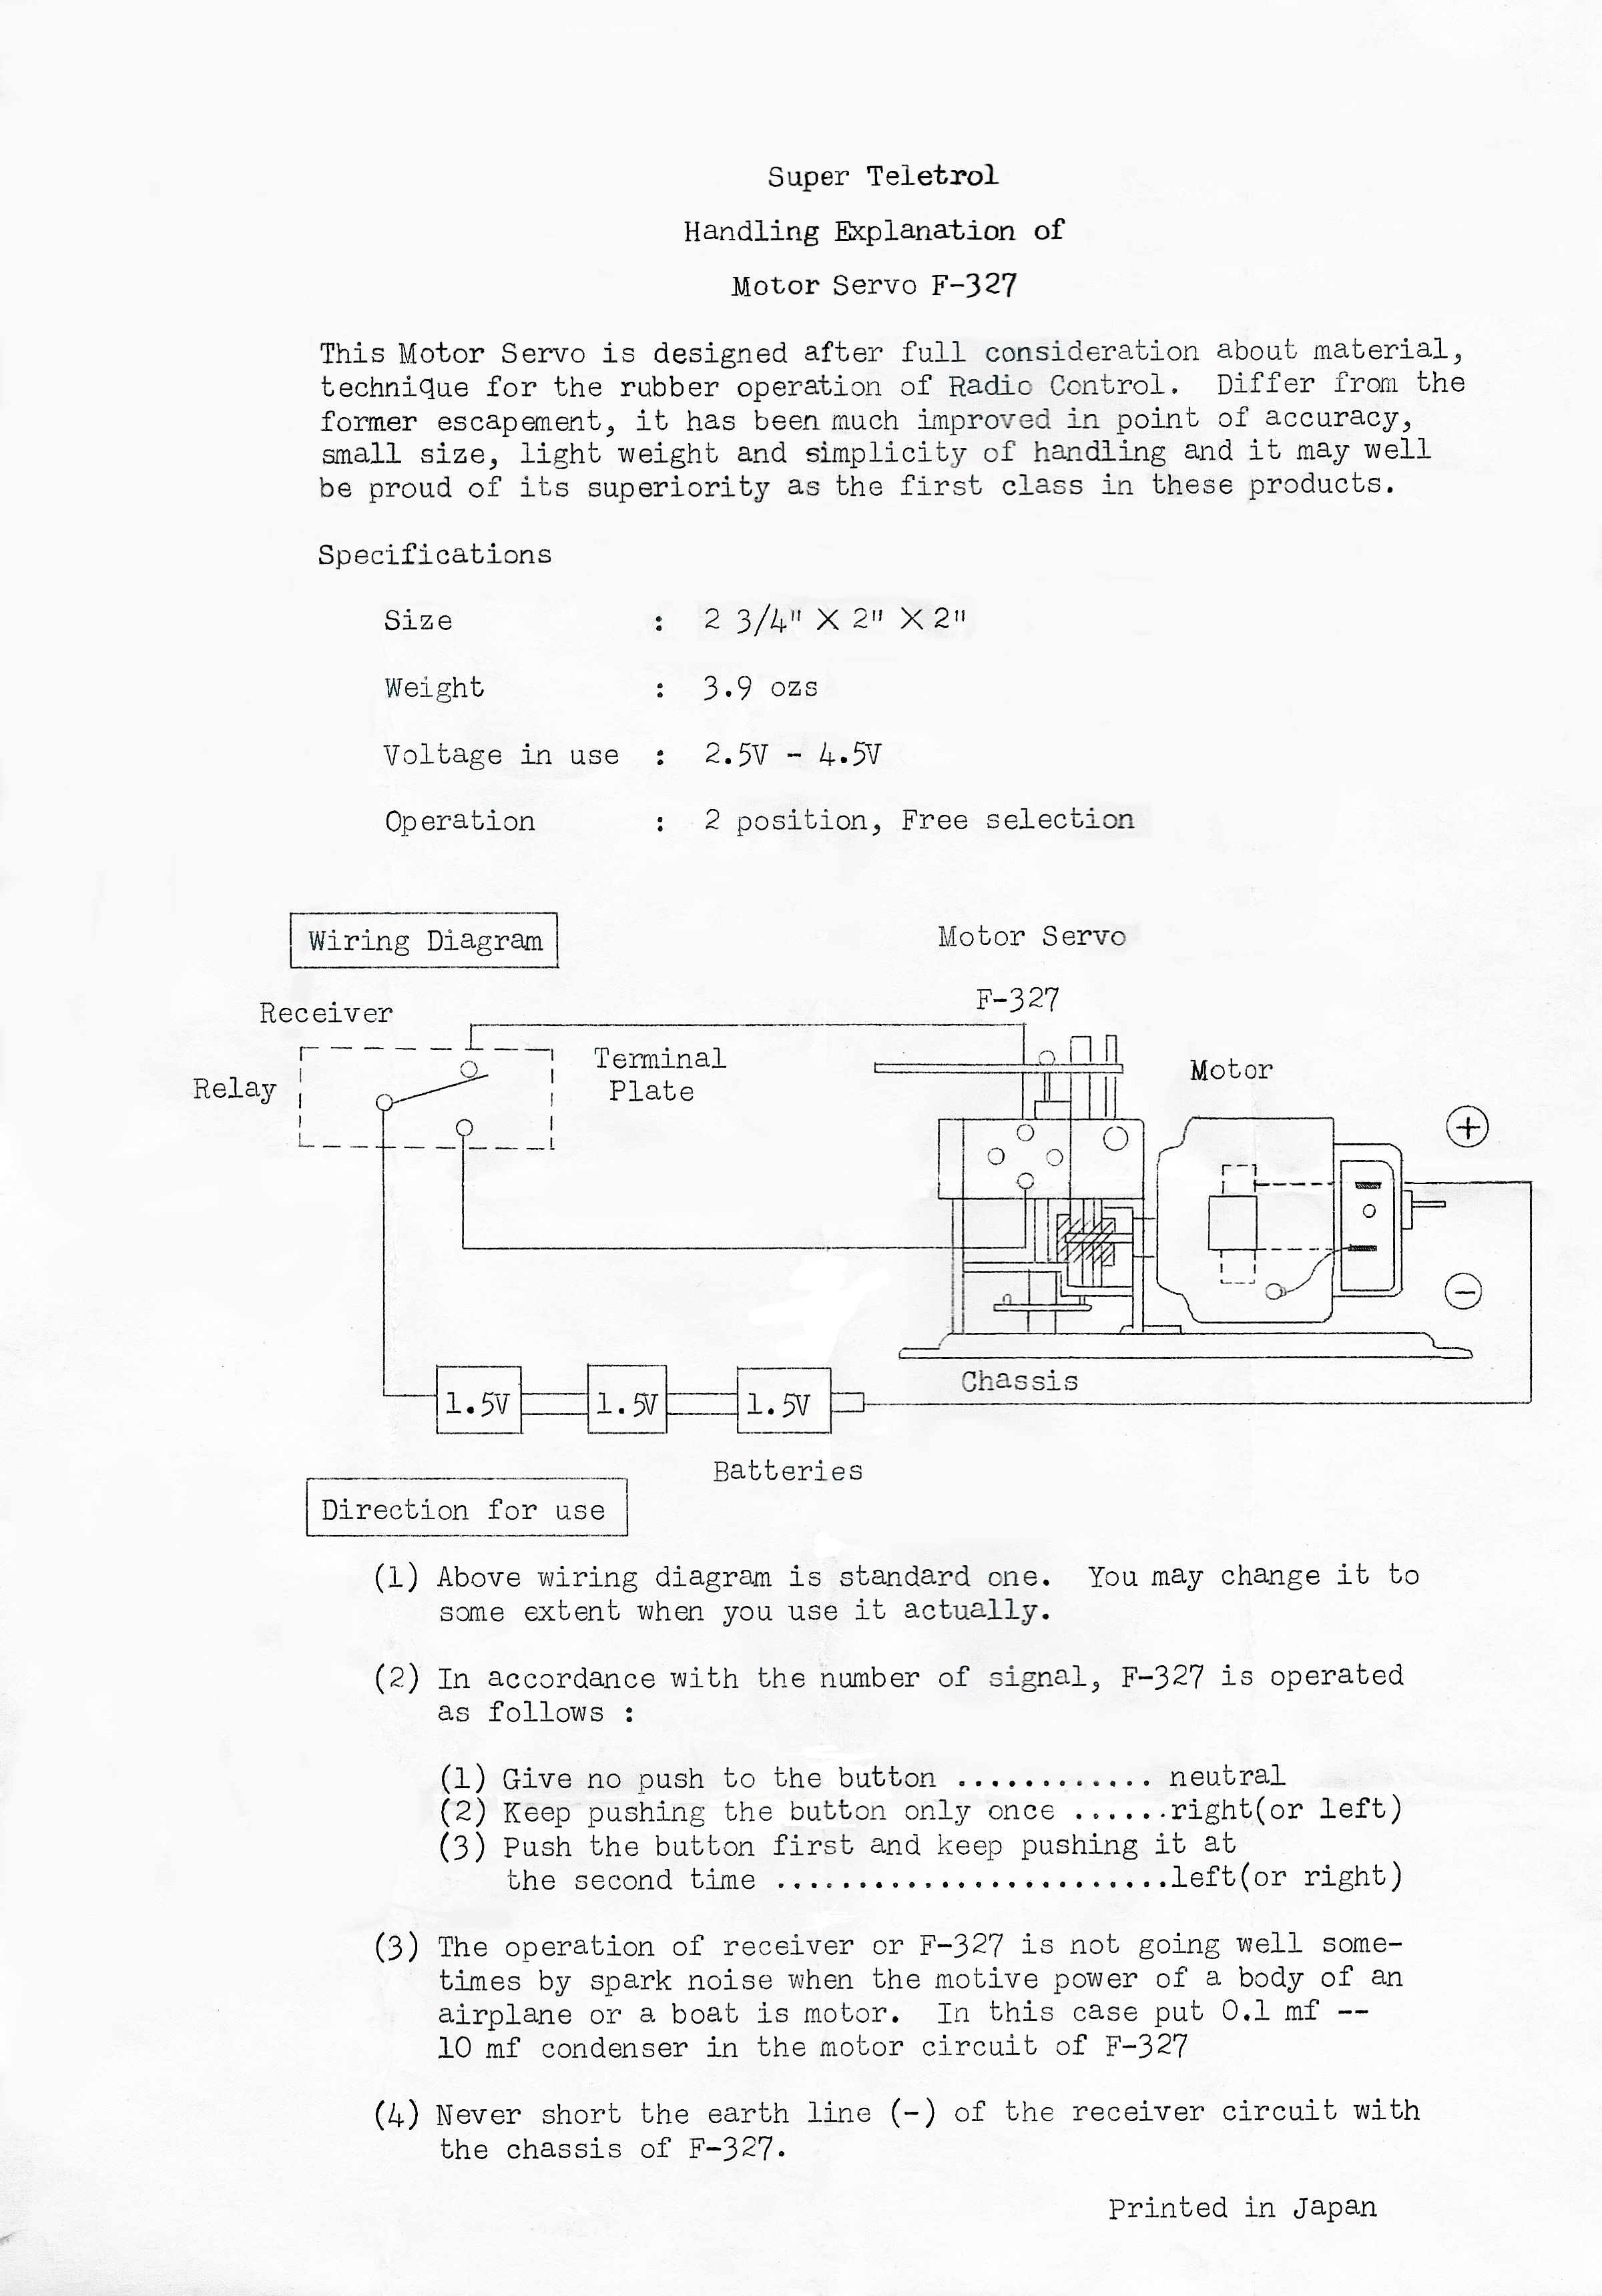 Index of /Files/Lafayette on troubleshooting diagrams, smart car diagrams, electronic circuit diagrams, gmc fuse box diagrams, internet of things diagrams, snatch block diagrams, motor diagrams, battery diagrams, pinout diagrams, lighting diagrams, sincgars radio configurations diagrams, friendship bracelet diagrams, hvac diagrams, honda motorcycle repair diagrams, electrical diagrams, led circuit diagrams, series and parallel circuits diagrams, engine diagrams, transformer diagrams, switch diagrams,